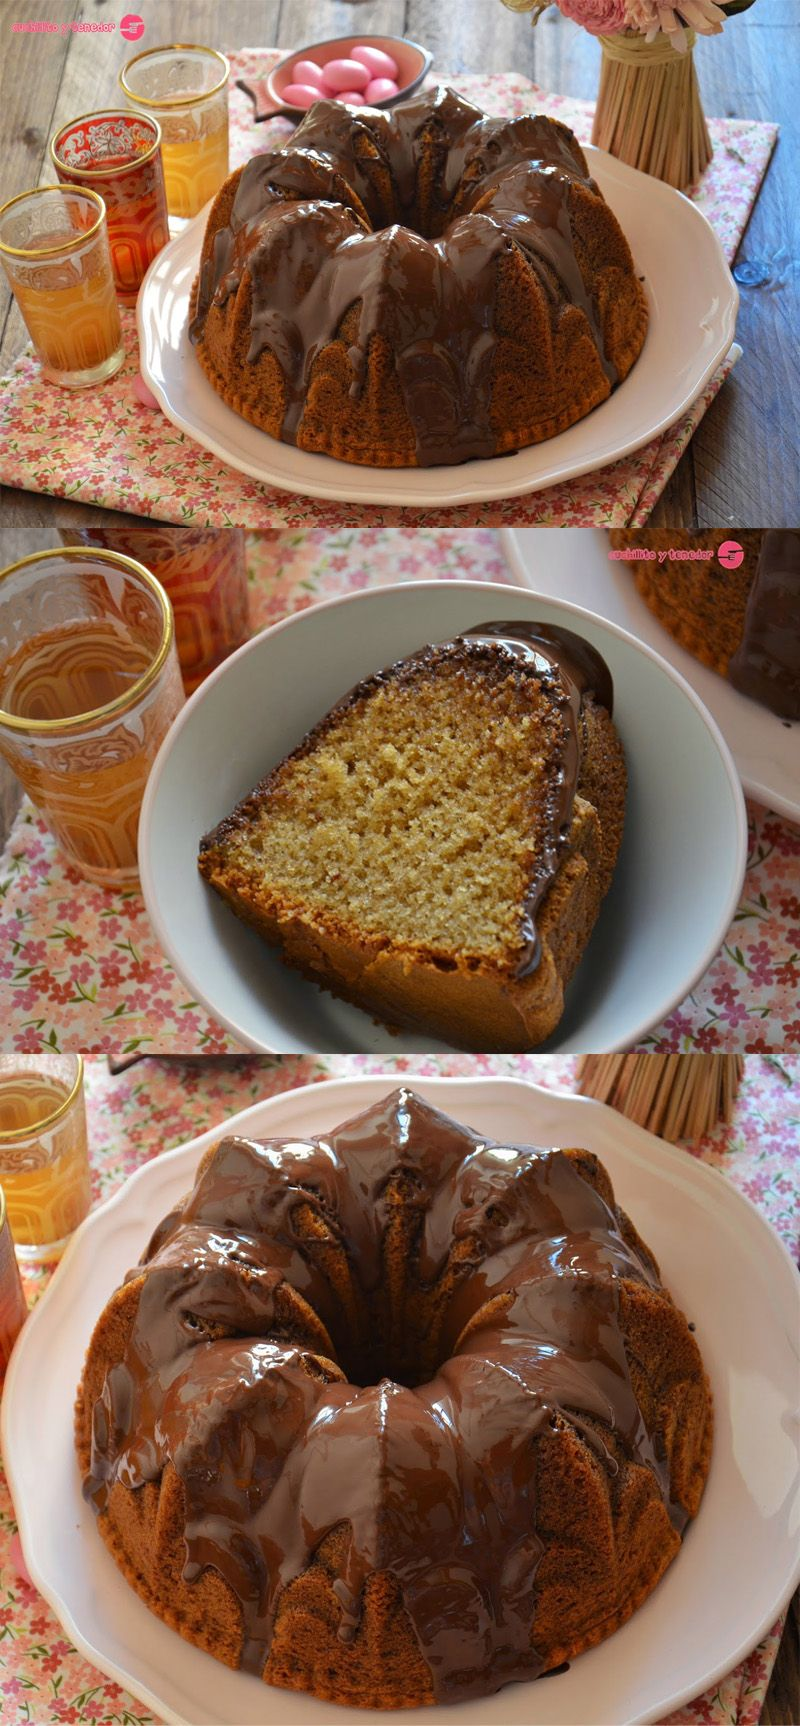 bundt-cake-chocolate-cafe-pecados-reposteria-1